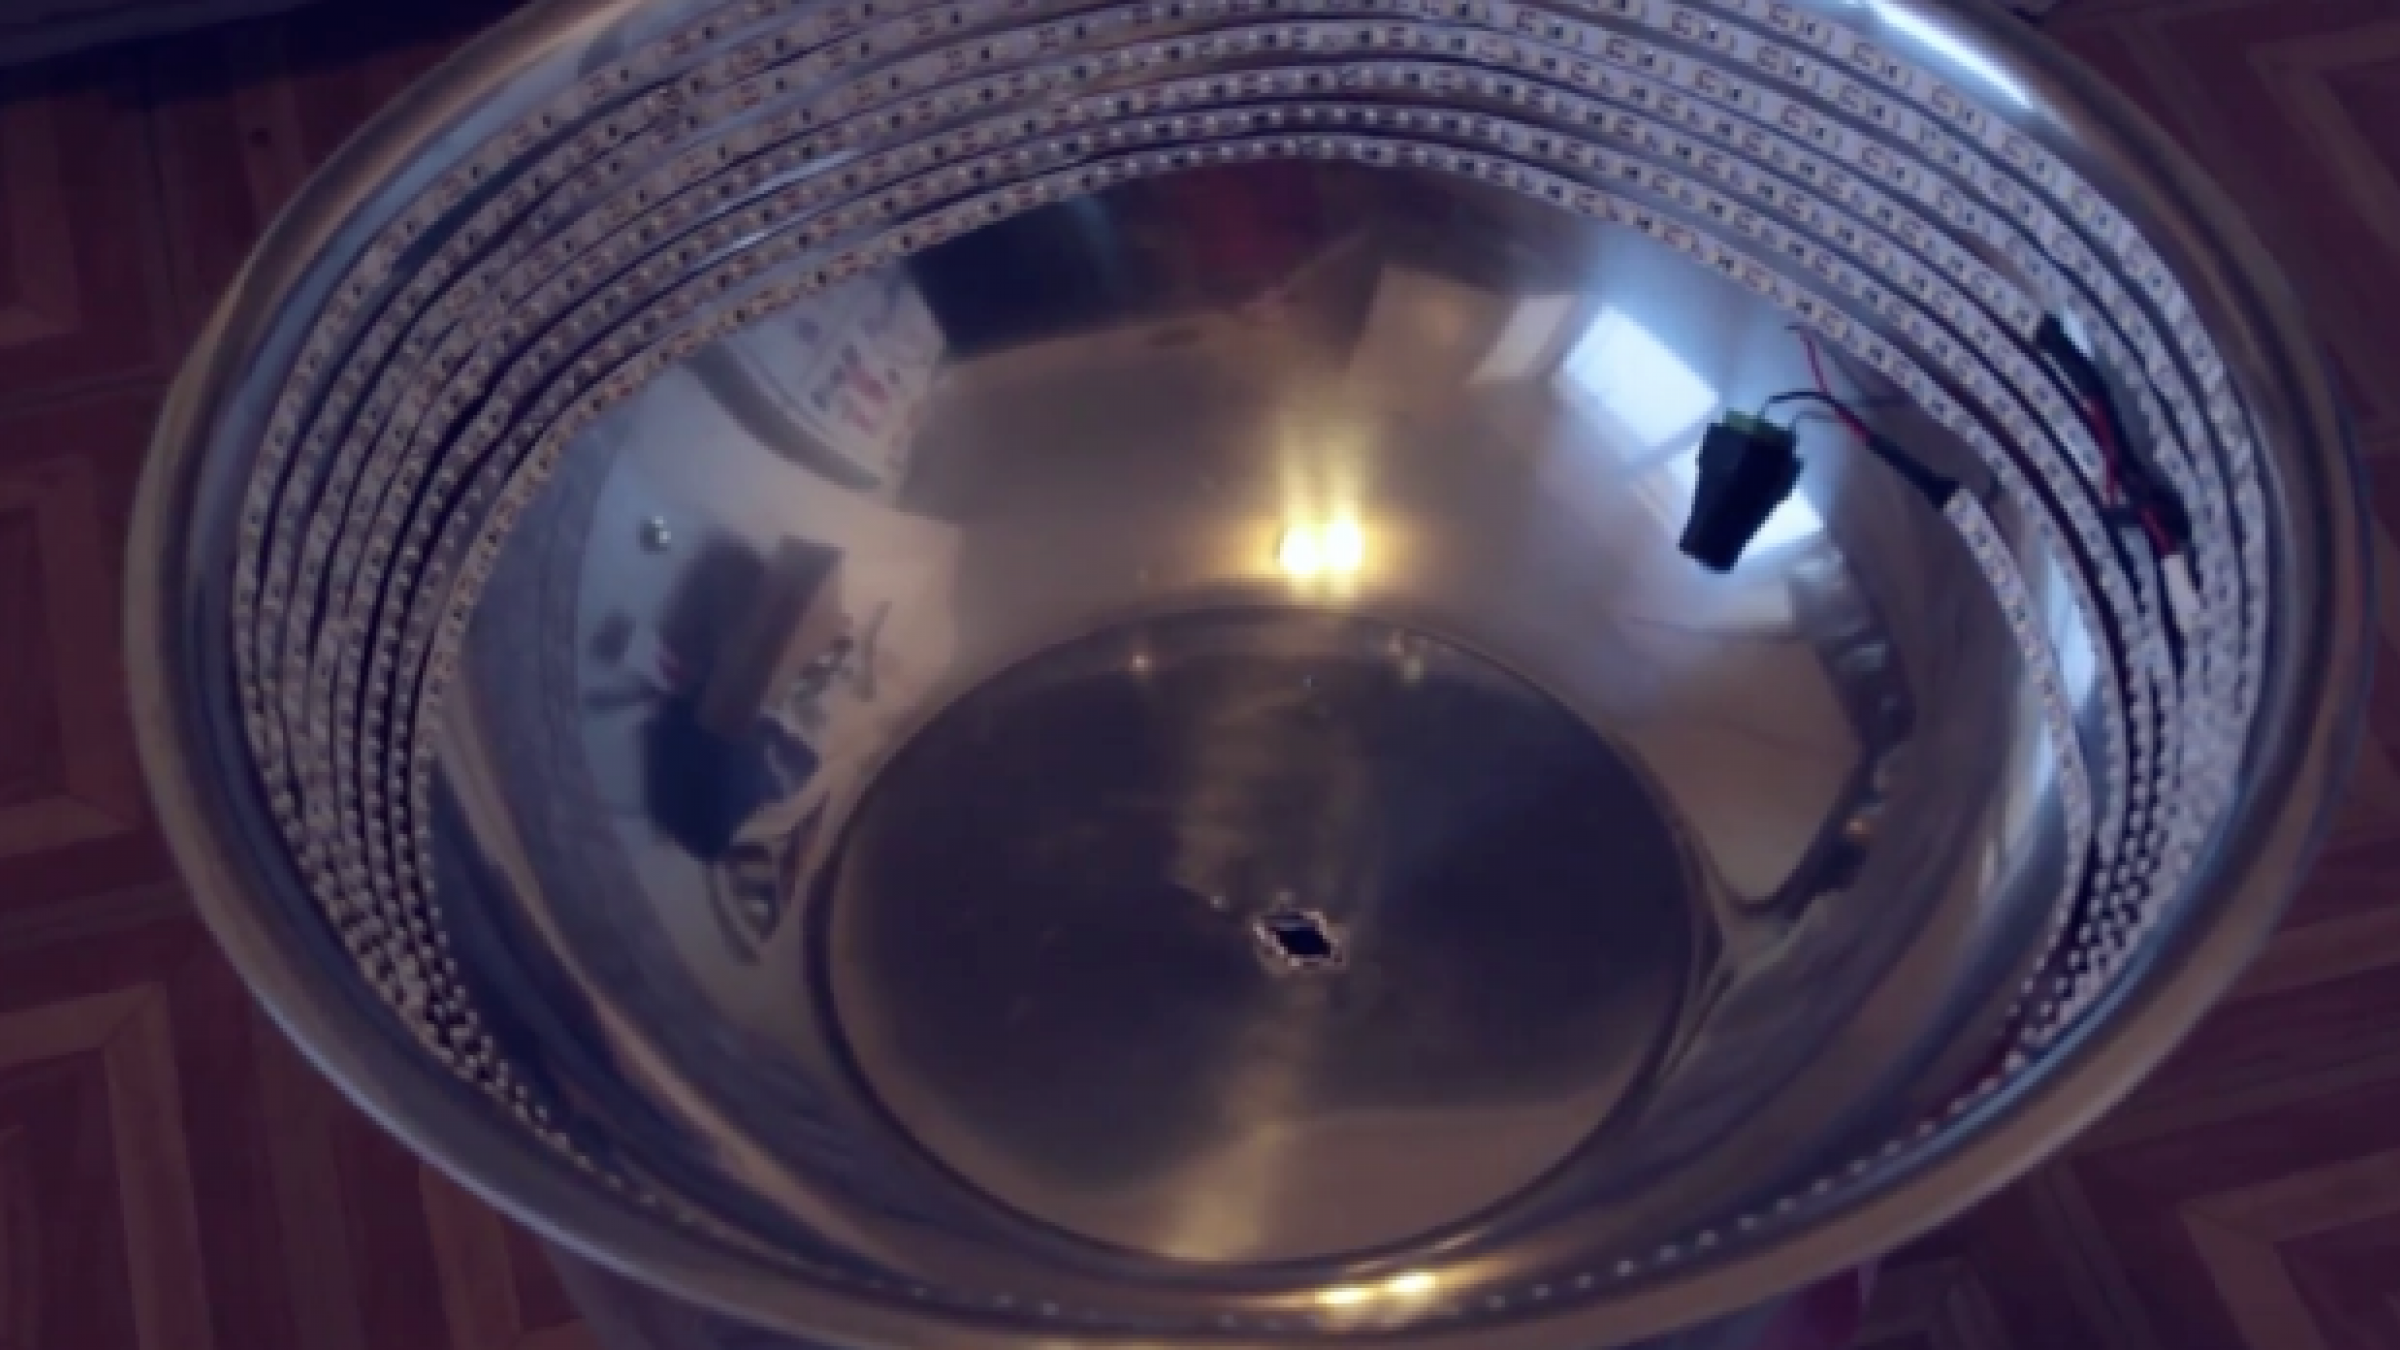 Learn How to Make a DIY $30 LED Ring Light Using Light Strips & a Mixing Bowl